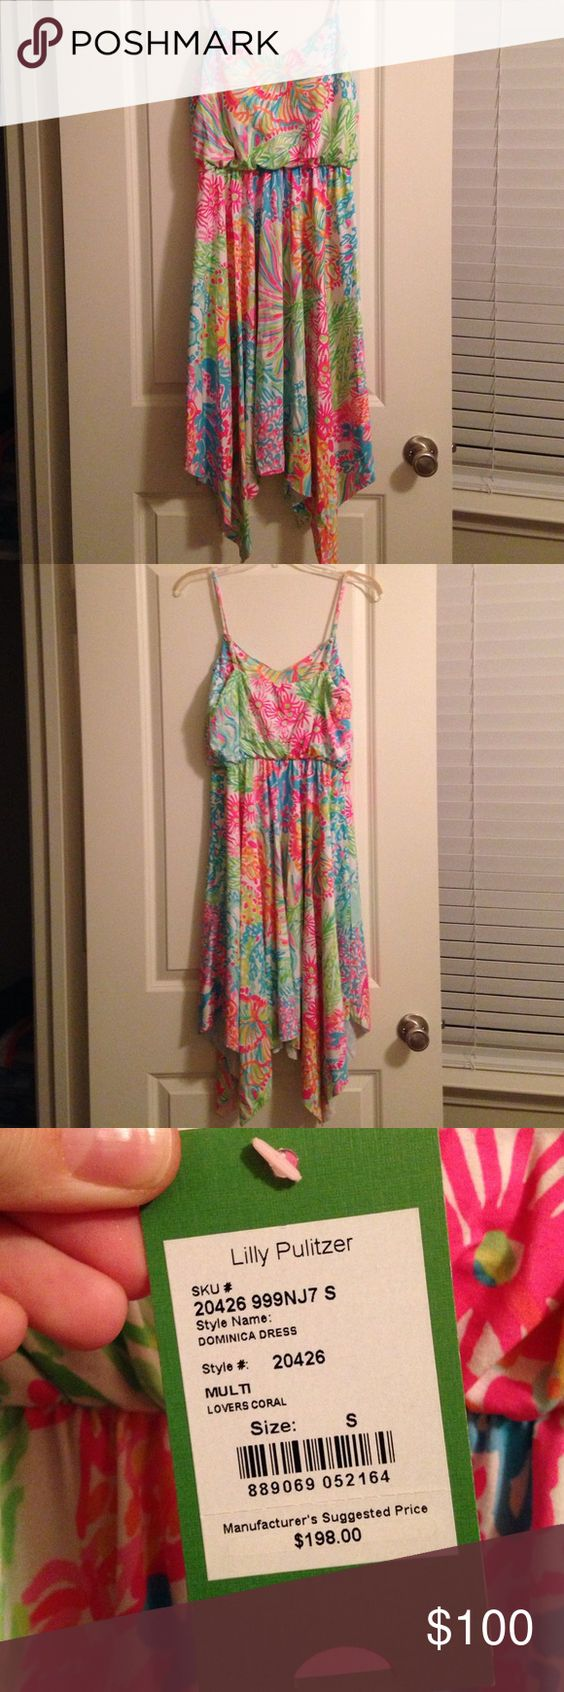 Lilly Pulitzer Dominica Dress in Lover's Coral Beautiful strappy dress with handkerchief-style hem. Lilly Pulitzer Summer 2016 collection. Multi Lover's Coral pattern. Size small. NWT, never been worn! Originally $198! Lilly Pulitzer Dresses